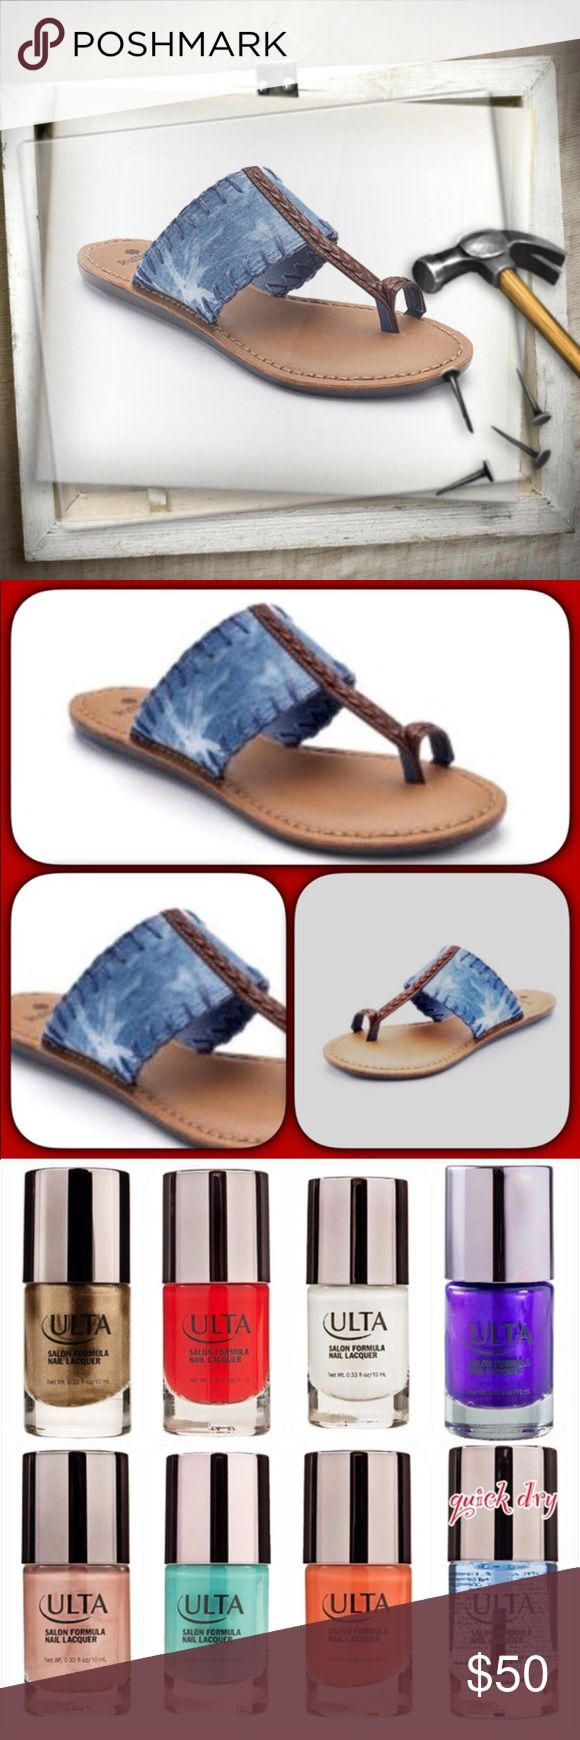 "Ruff Hew ""Indie"" Fabric Thong Sandal 🔩Nail It...Gurl🔩 These boho-chic sandals are just the right ""spice"" to add to your shoe collection! Blue Tye-Dye in color; faux leather footbed w/extra cushioning; fabric banded upper w/braided faux leather toe ring thong detail; rubber outsole 🎁One full-size (0.33 oz.) Ulta Salon Formula Nail Lacquer included w/purchase. Eye-It...Buy-It✌🏾️ Ruff Hewn Shoes Sandals"